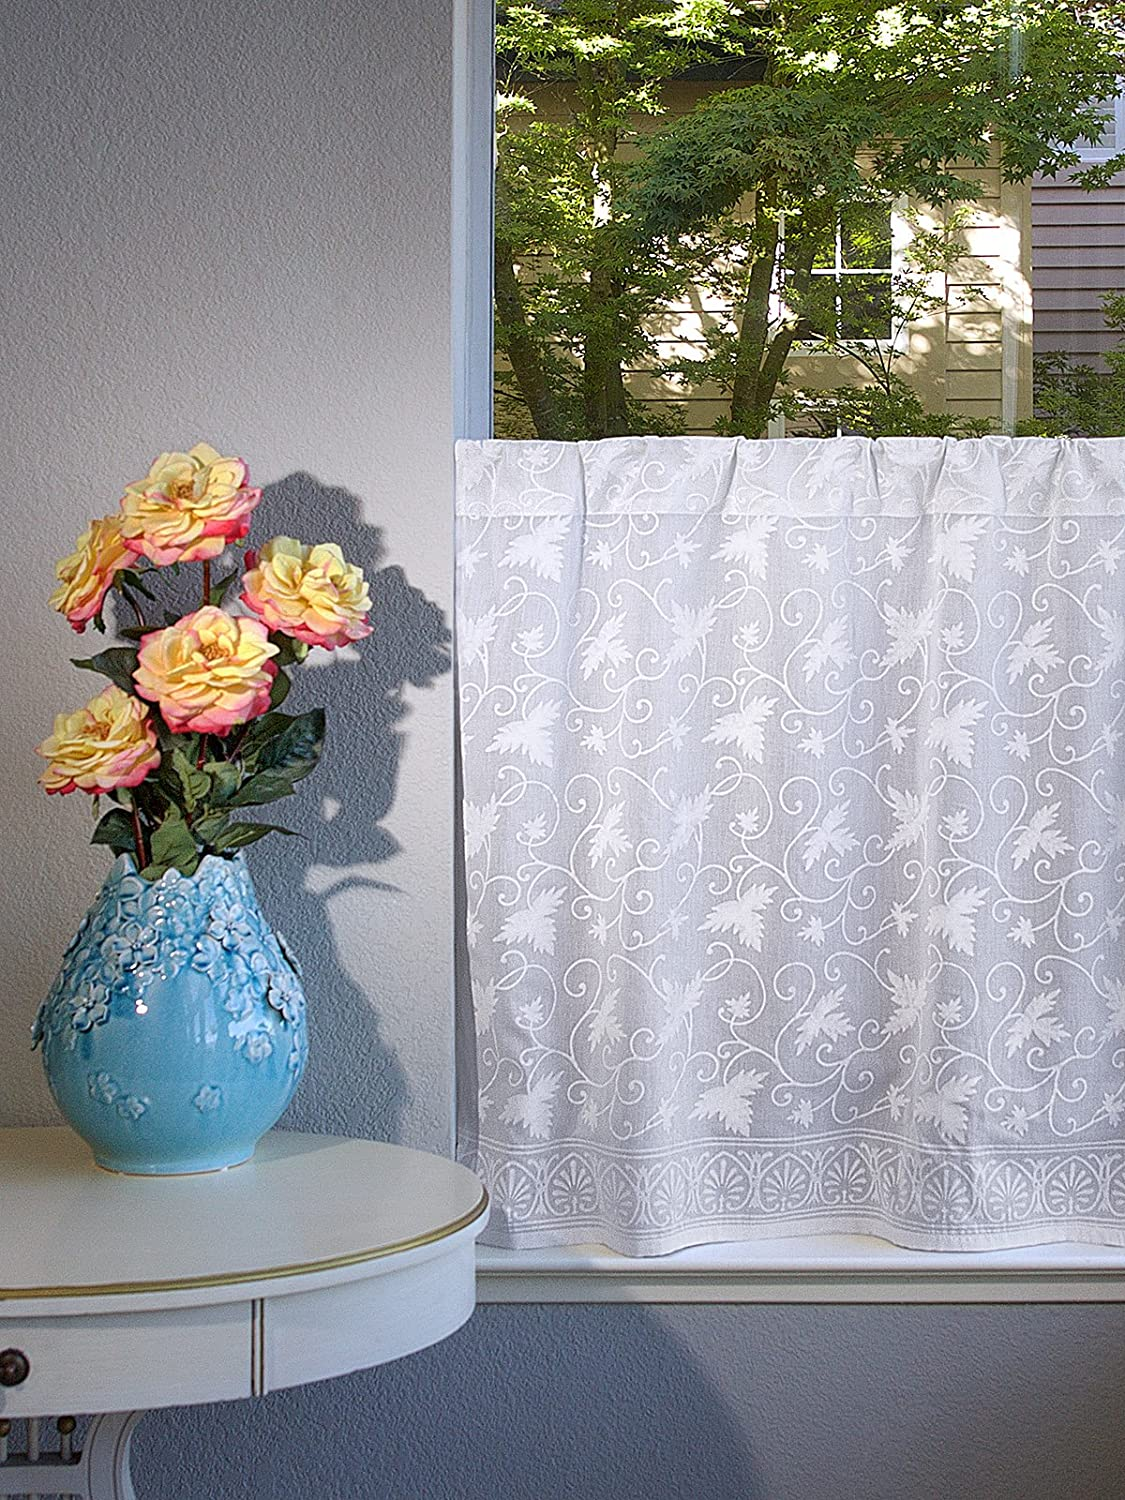 Strange Saffron Marigold Ivy Lace Handprint Cafe Kitchen Curtains Country Cottage Curtains Voile Sheer White Curtains 46 X 24 Home Remodeling Inspirations Genioncuboardxyz